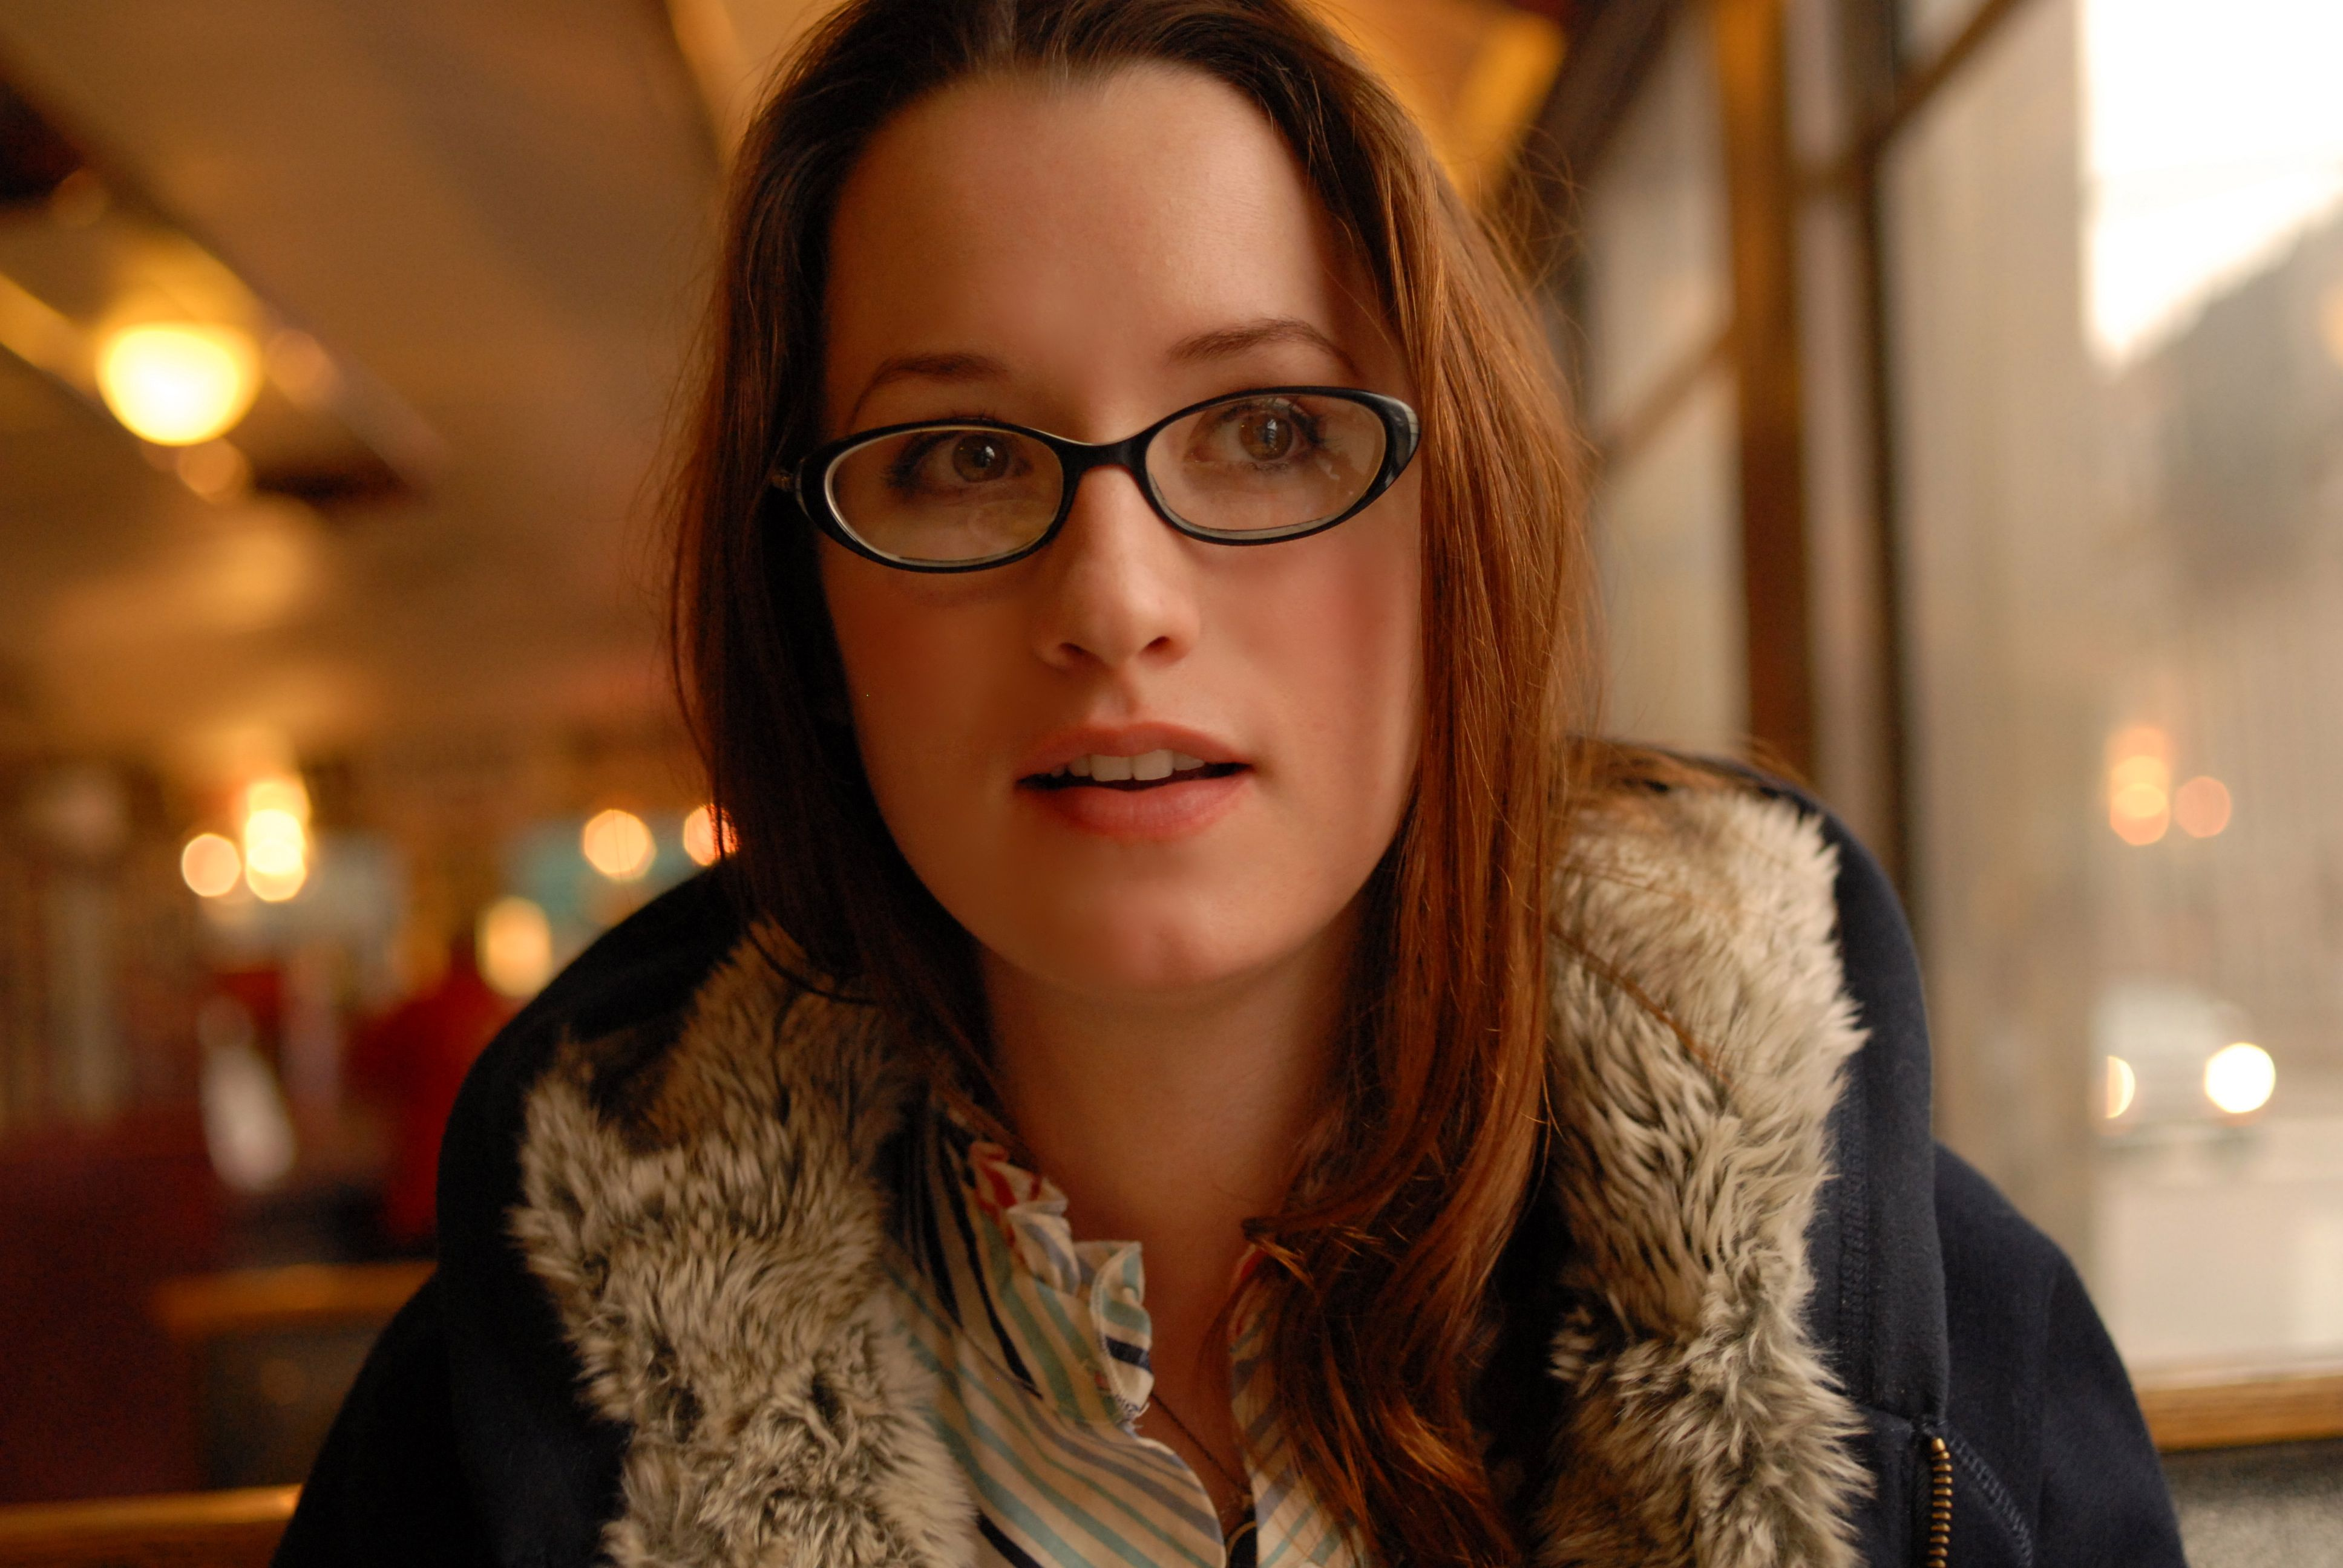 Ingrid Michaelson | Music | Pinterest | Ingrid michaelson